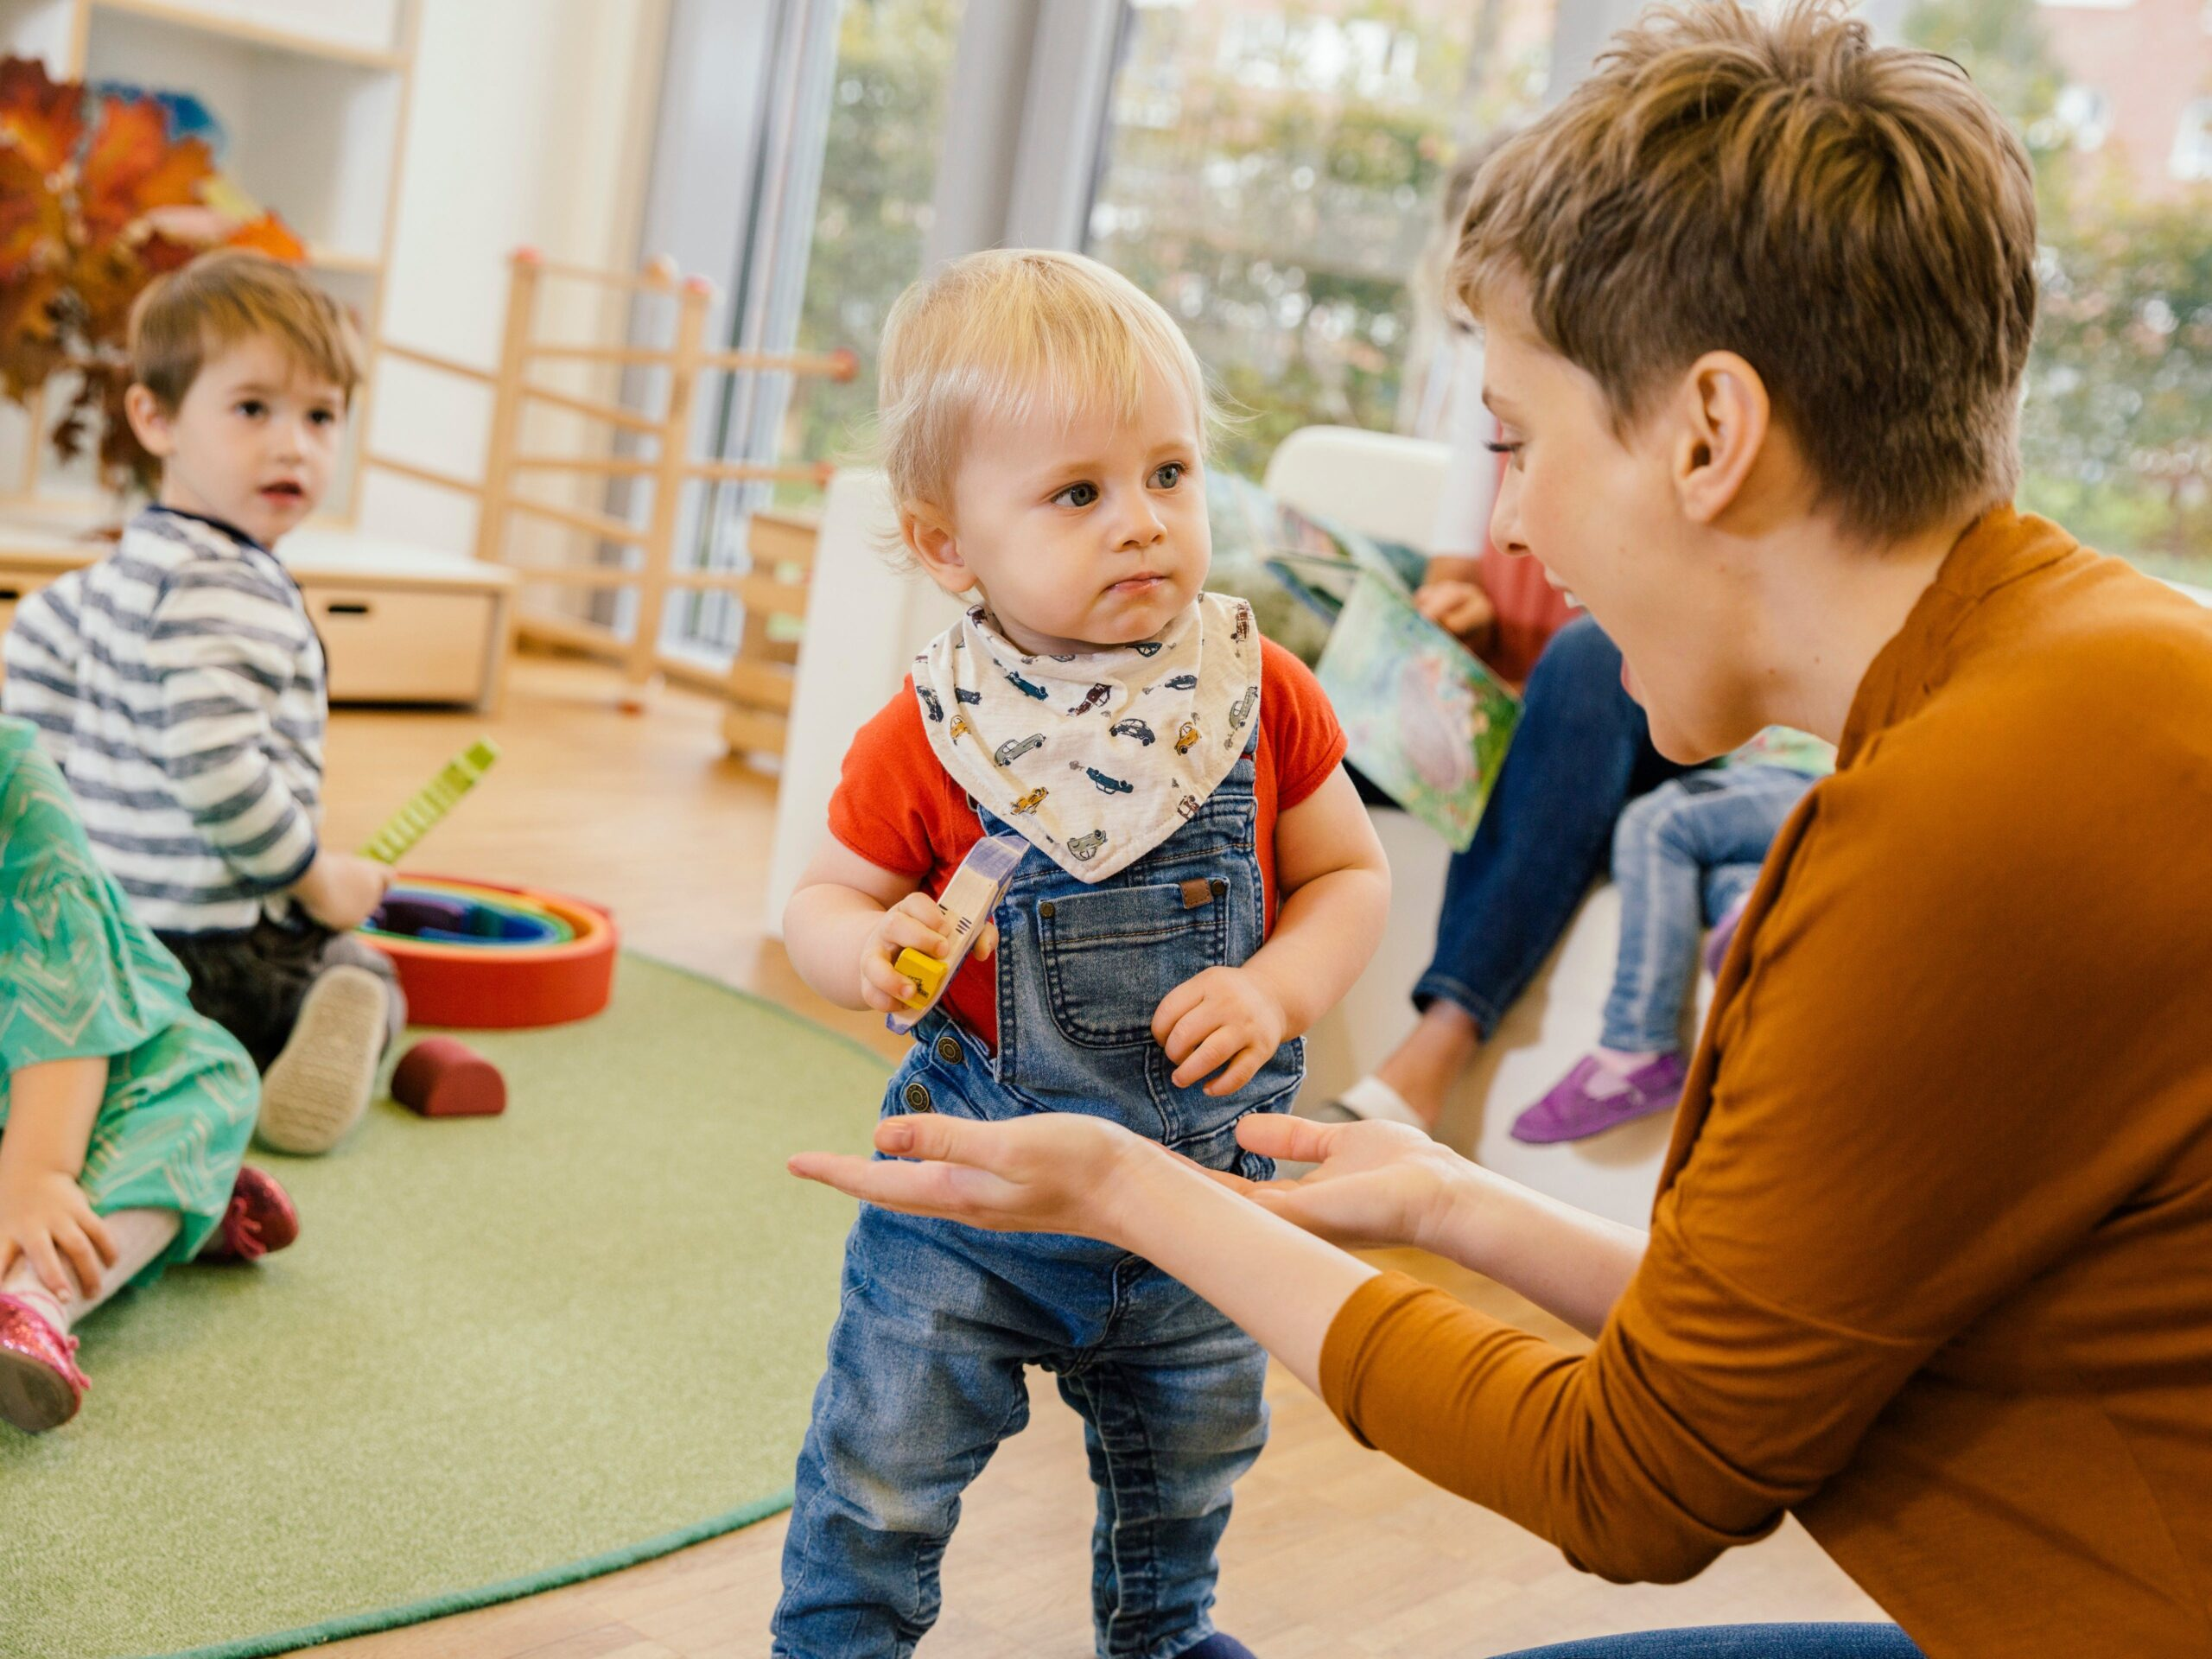 5 important steps for getting your kid into an elite preschool, according to a veteran admissions consultant